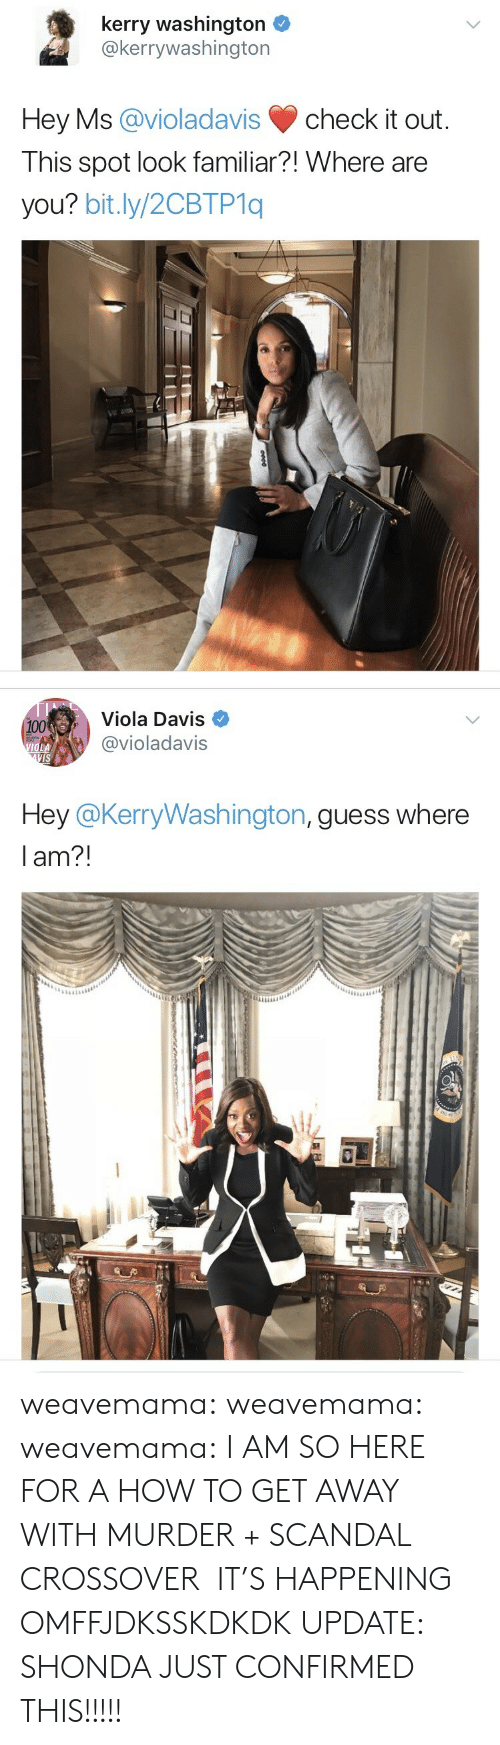 Anaconda, Tumblr, and Blog: kerry washington  @kerrywashington  Hey Ms @violadavis check it out  I his spot look familiar?! Where are  you? bit.ly/2CBTP1q   Viola Davis  @violadavis  100  VIS  Hey @KerryWashington, quess where  lam?! weavemama: weavemama:  weavemama:  I AM SO HERE FOR A HOW TO GET AWAY WITH MURDER + SCANDAL CROSSOVER  IT'S HAPPENING OMFFJDKSSKDKDK  UPDATE: SHONDA JUST CONFIRMED THIS!!!!!